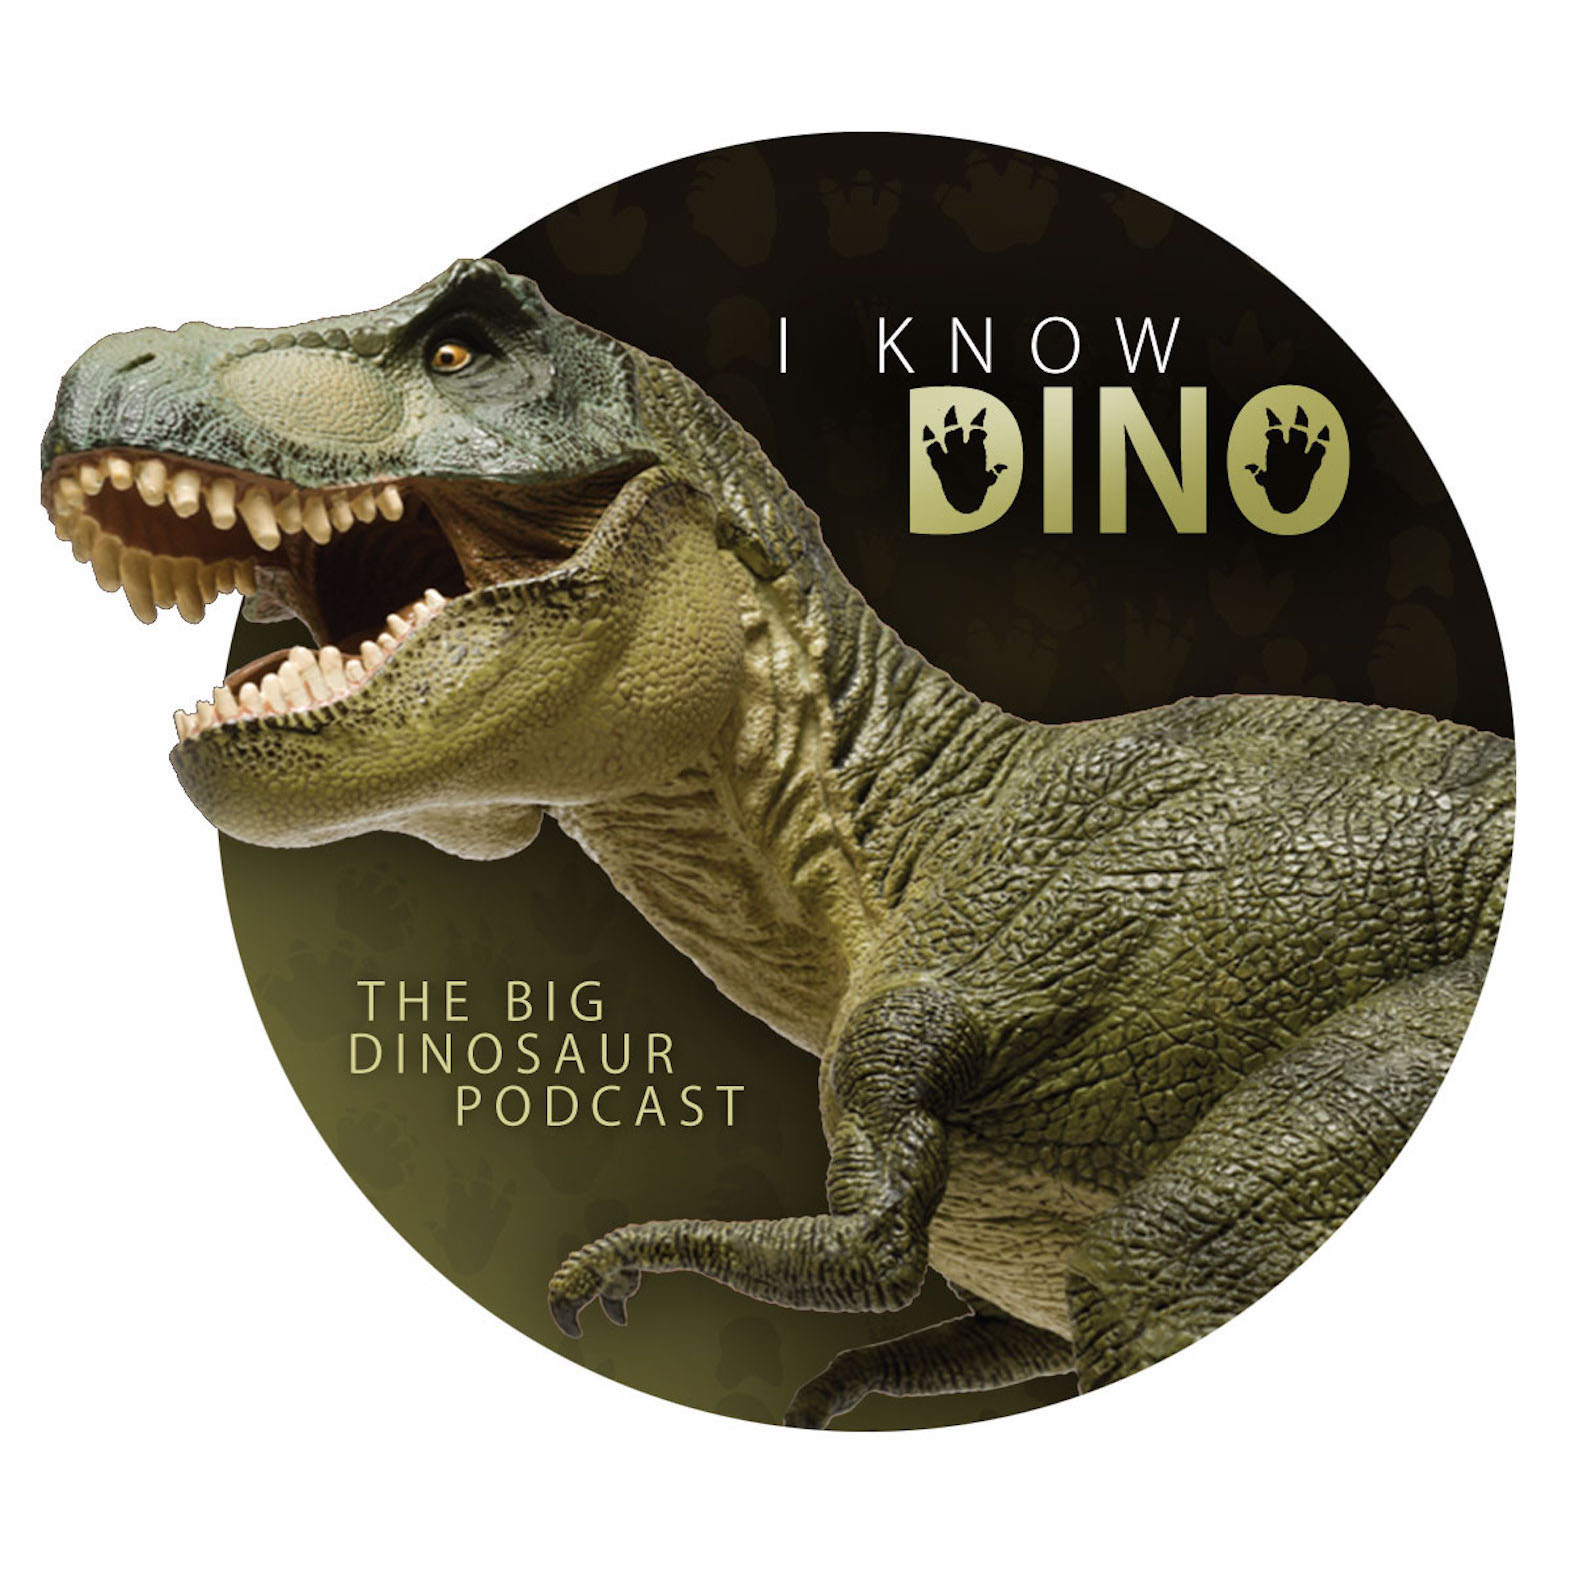 All Archives - Page 46 of 53 - I Know Dino: The Big Dinosaur Podcast